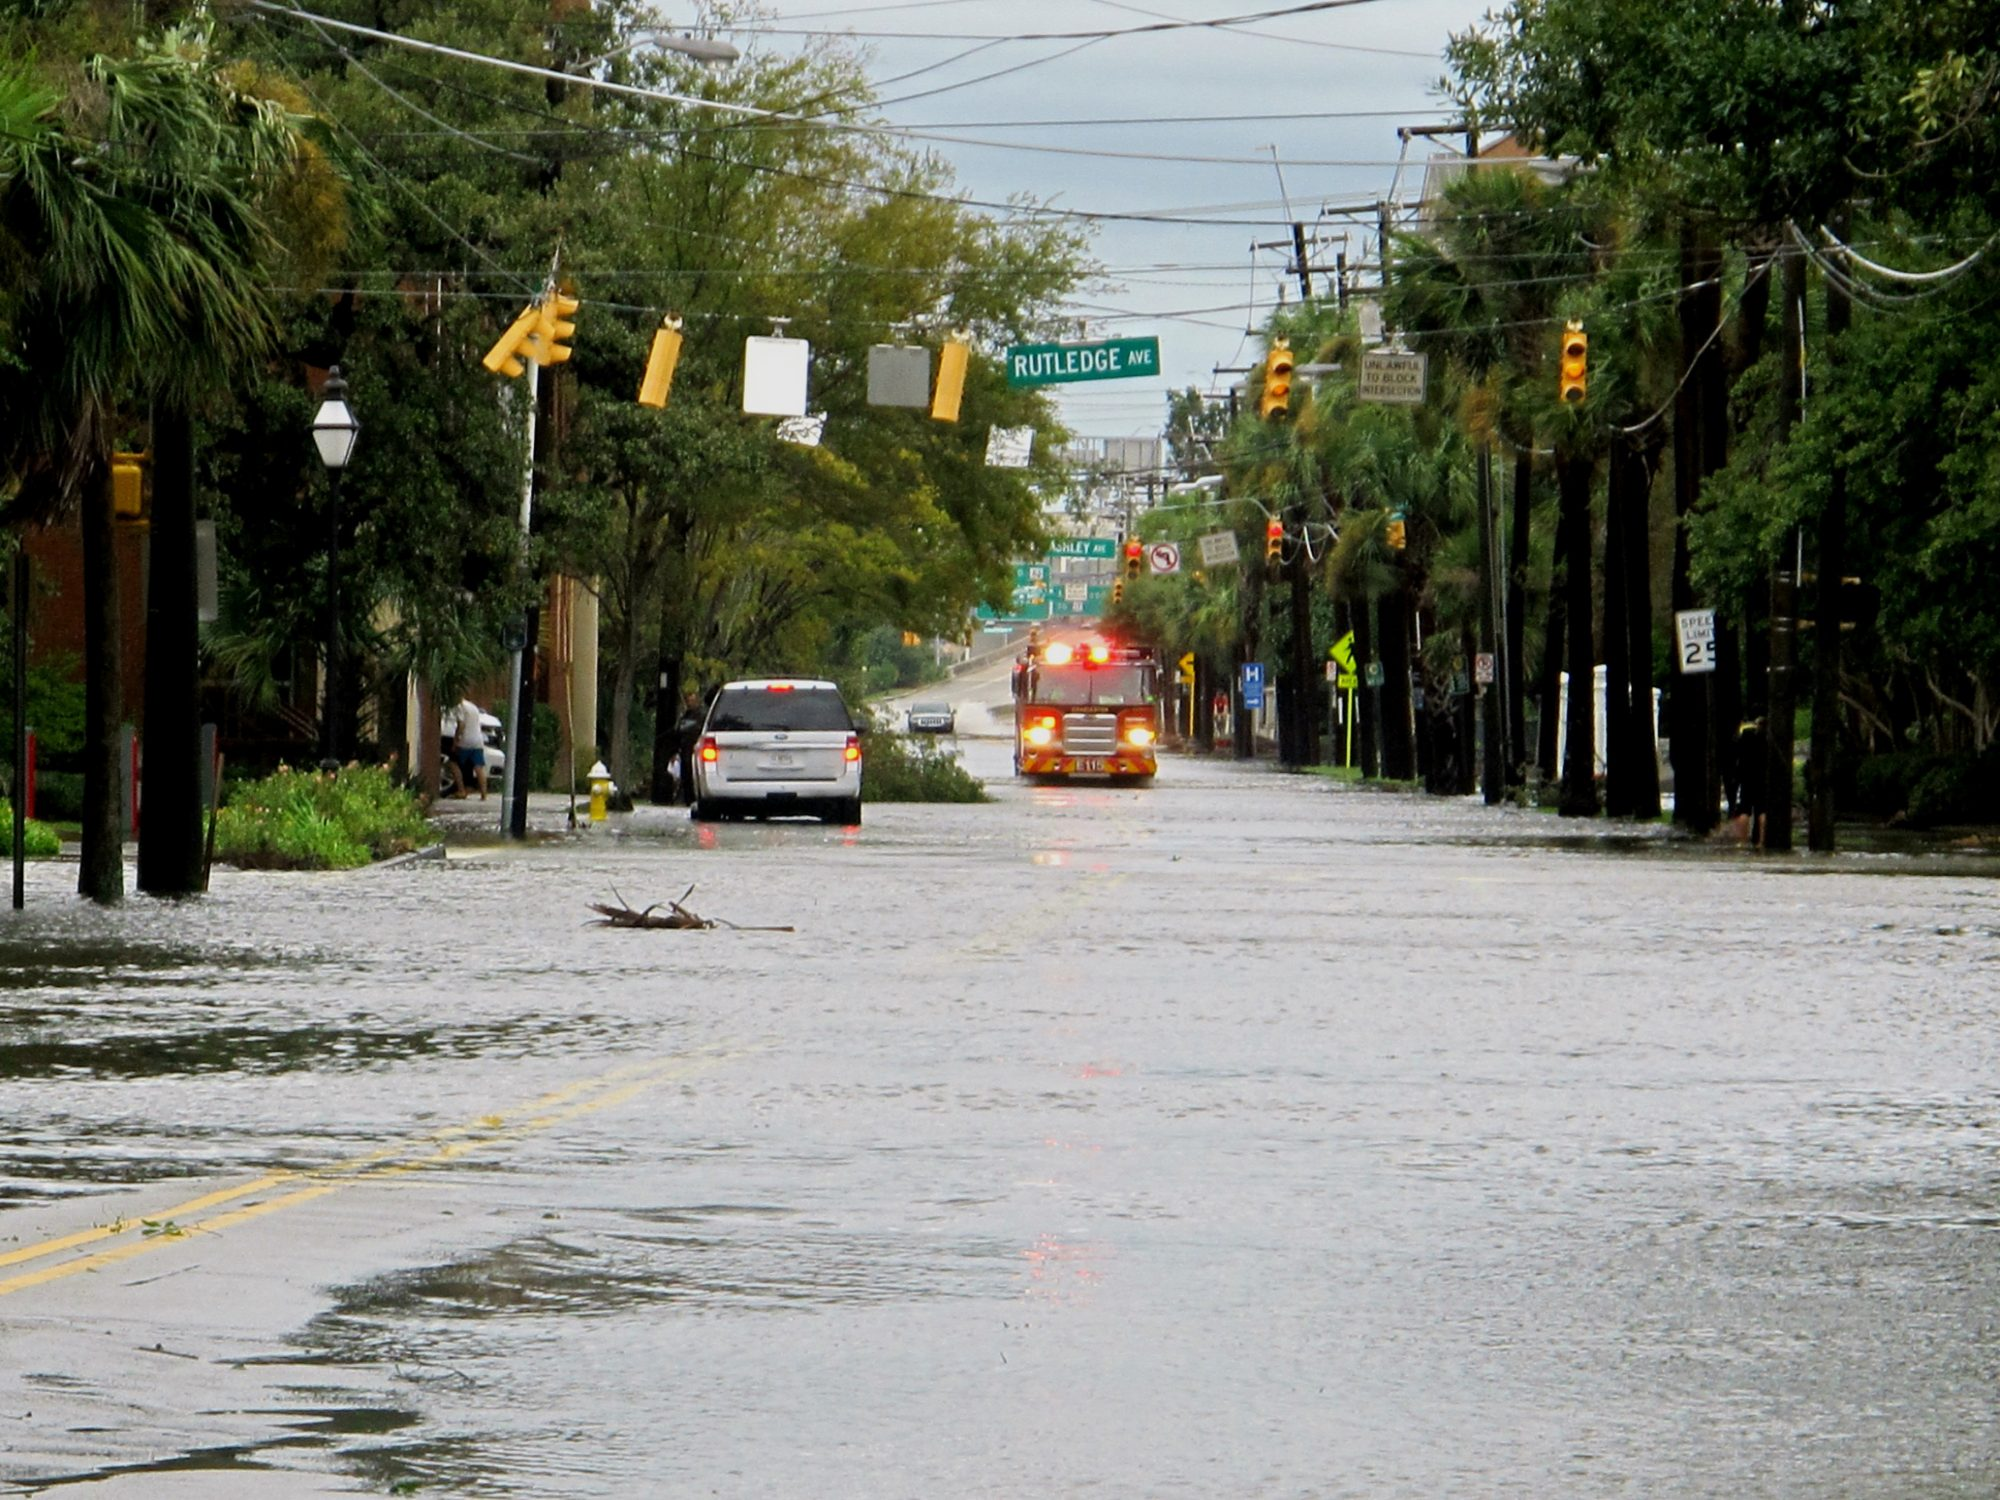 A firetruck drives through a flooded street in the hospital district of Charleston, S.C., on Saturday, Oct. 8, 2016 after Hurricane Matthew passed through. Most of the damage in the city was downed trees and street flooding and officials said 100 streets were closed because of high water.